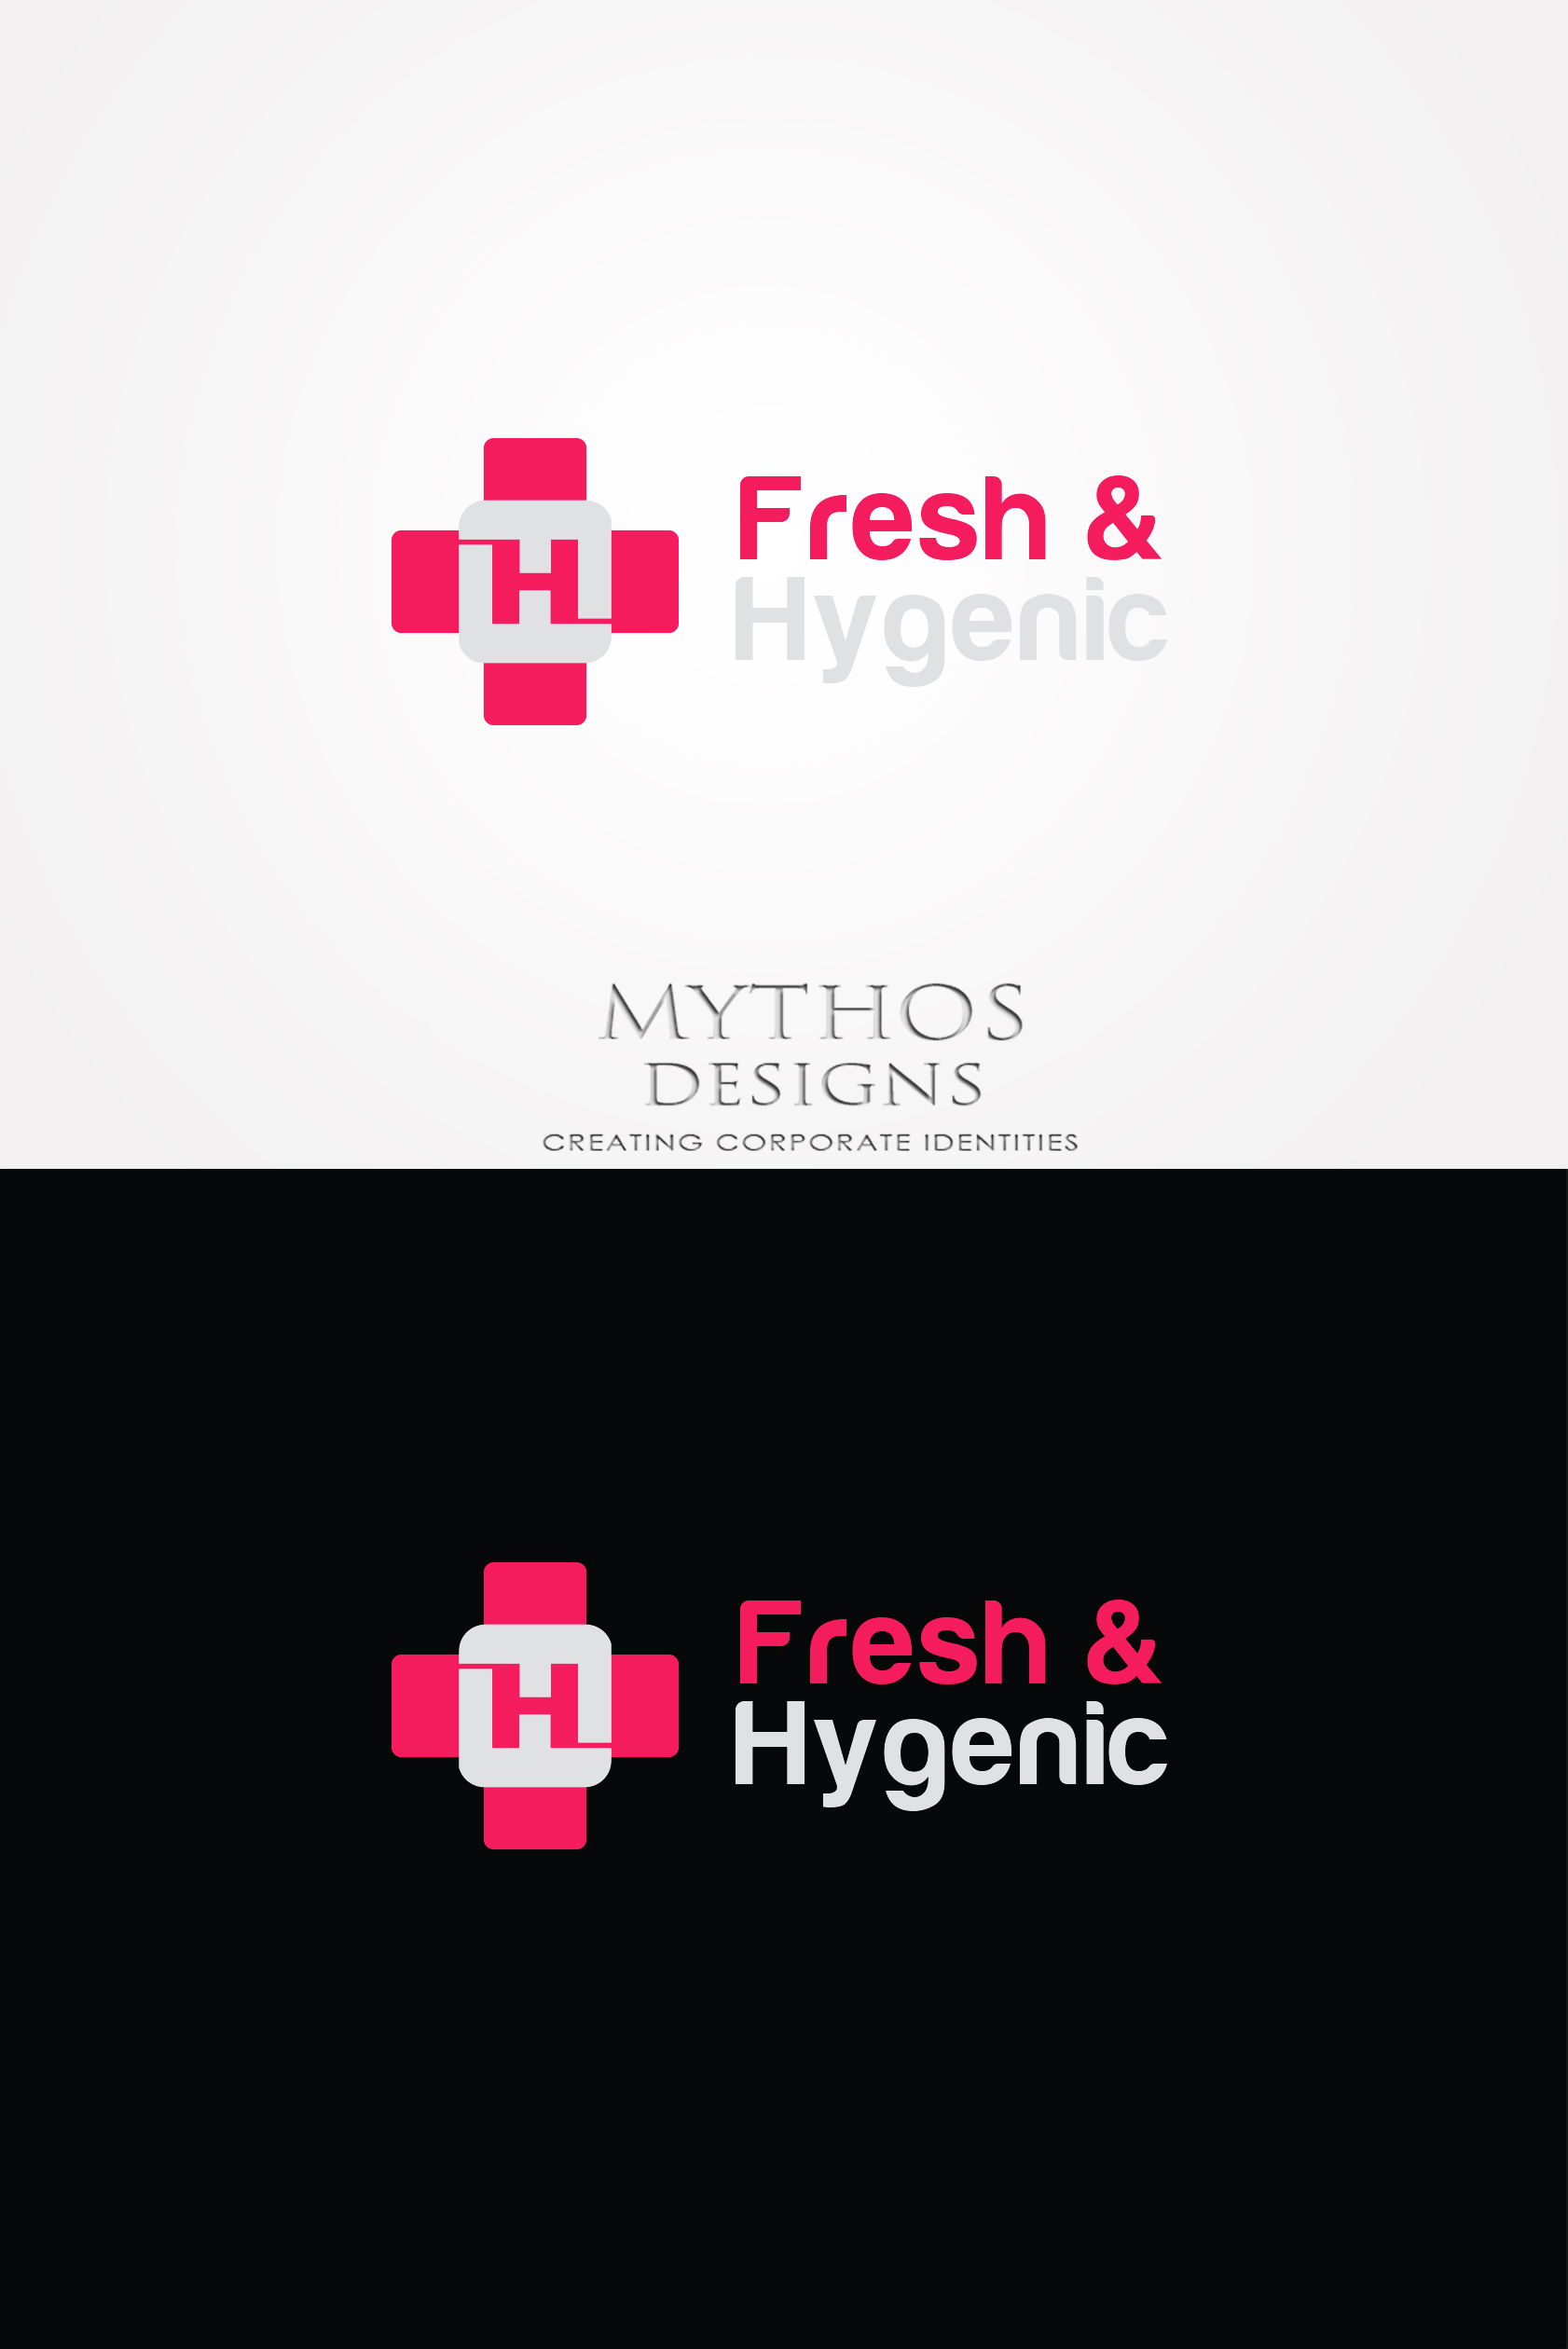 Logo Design by Mythos Designs - Entry No. 145 in the Logo Design Contest Fun Logo Design for Fresh & Hygenic.